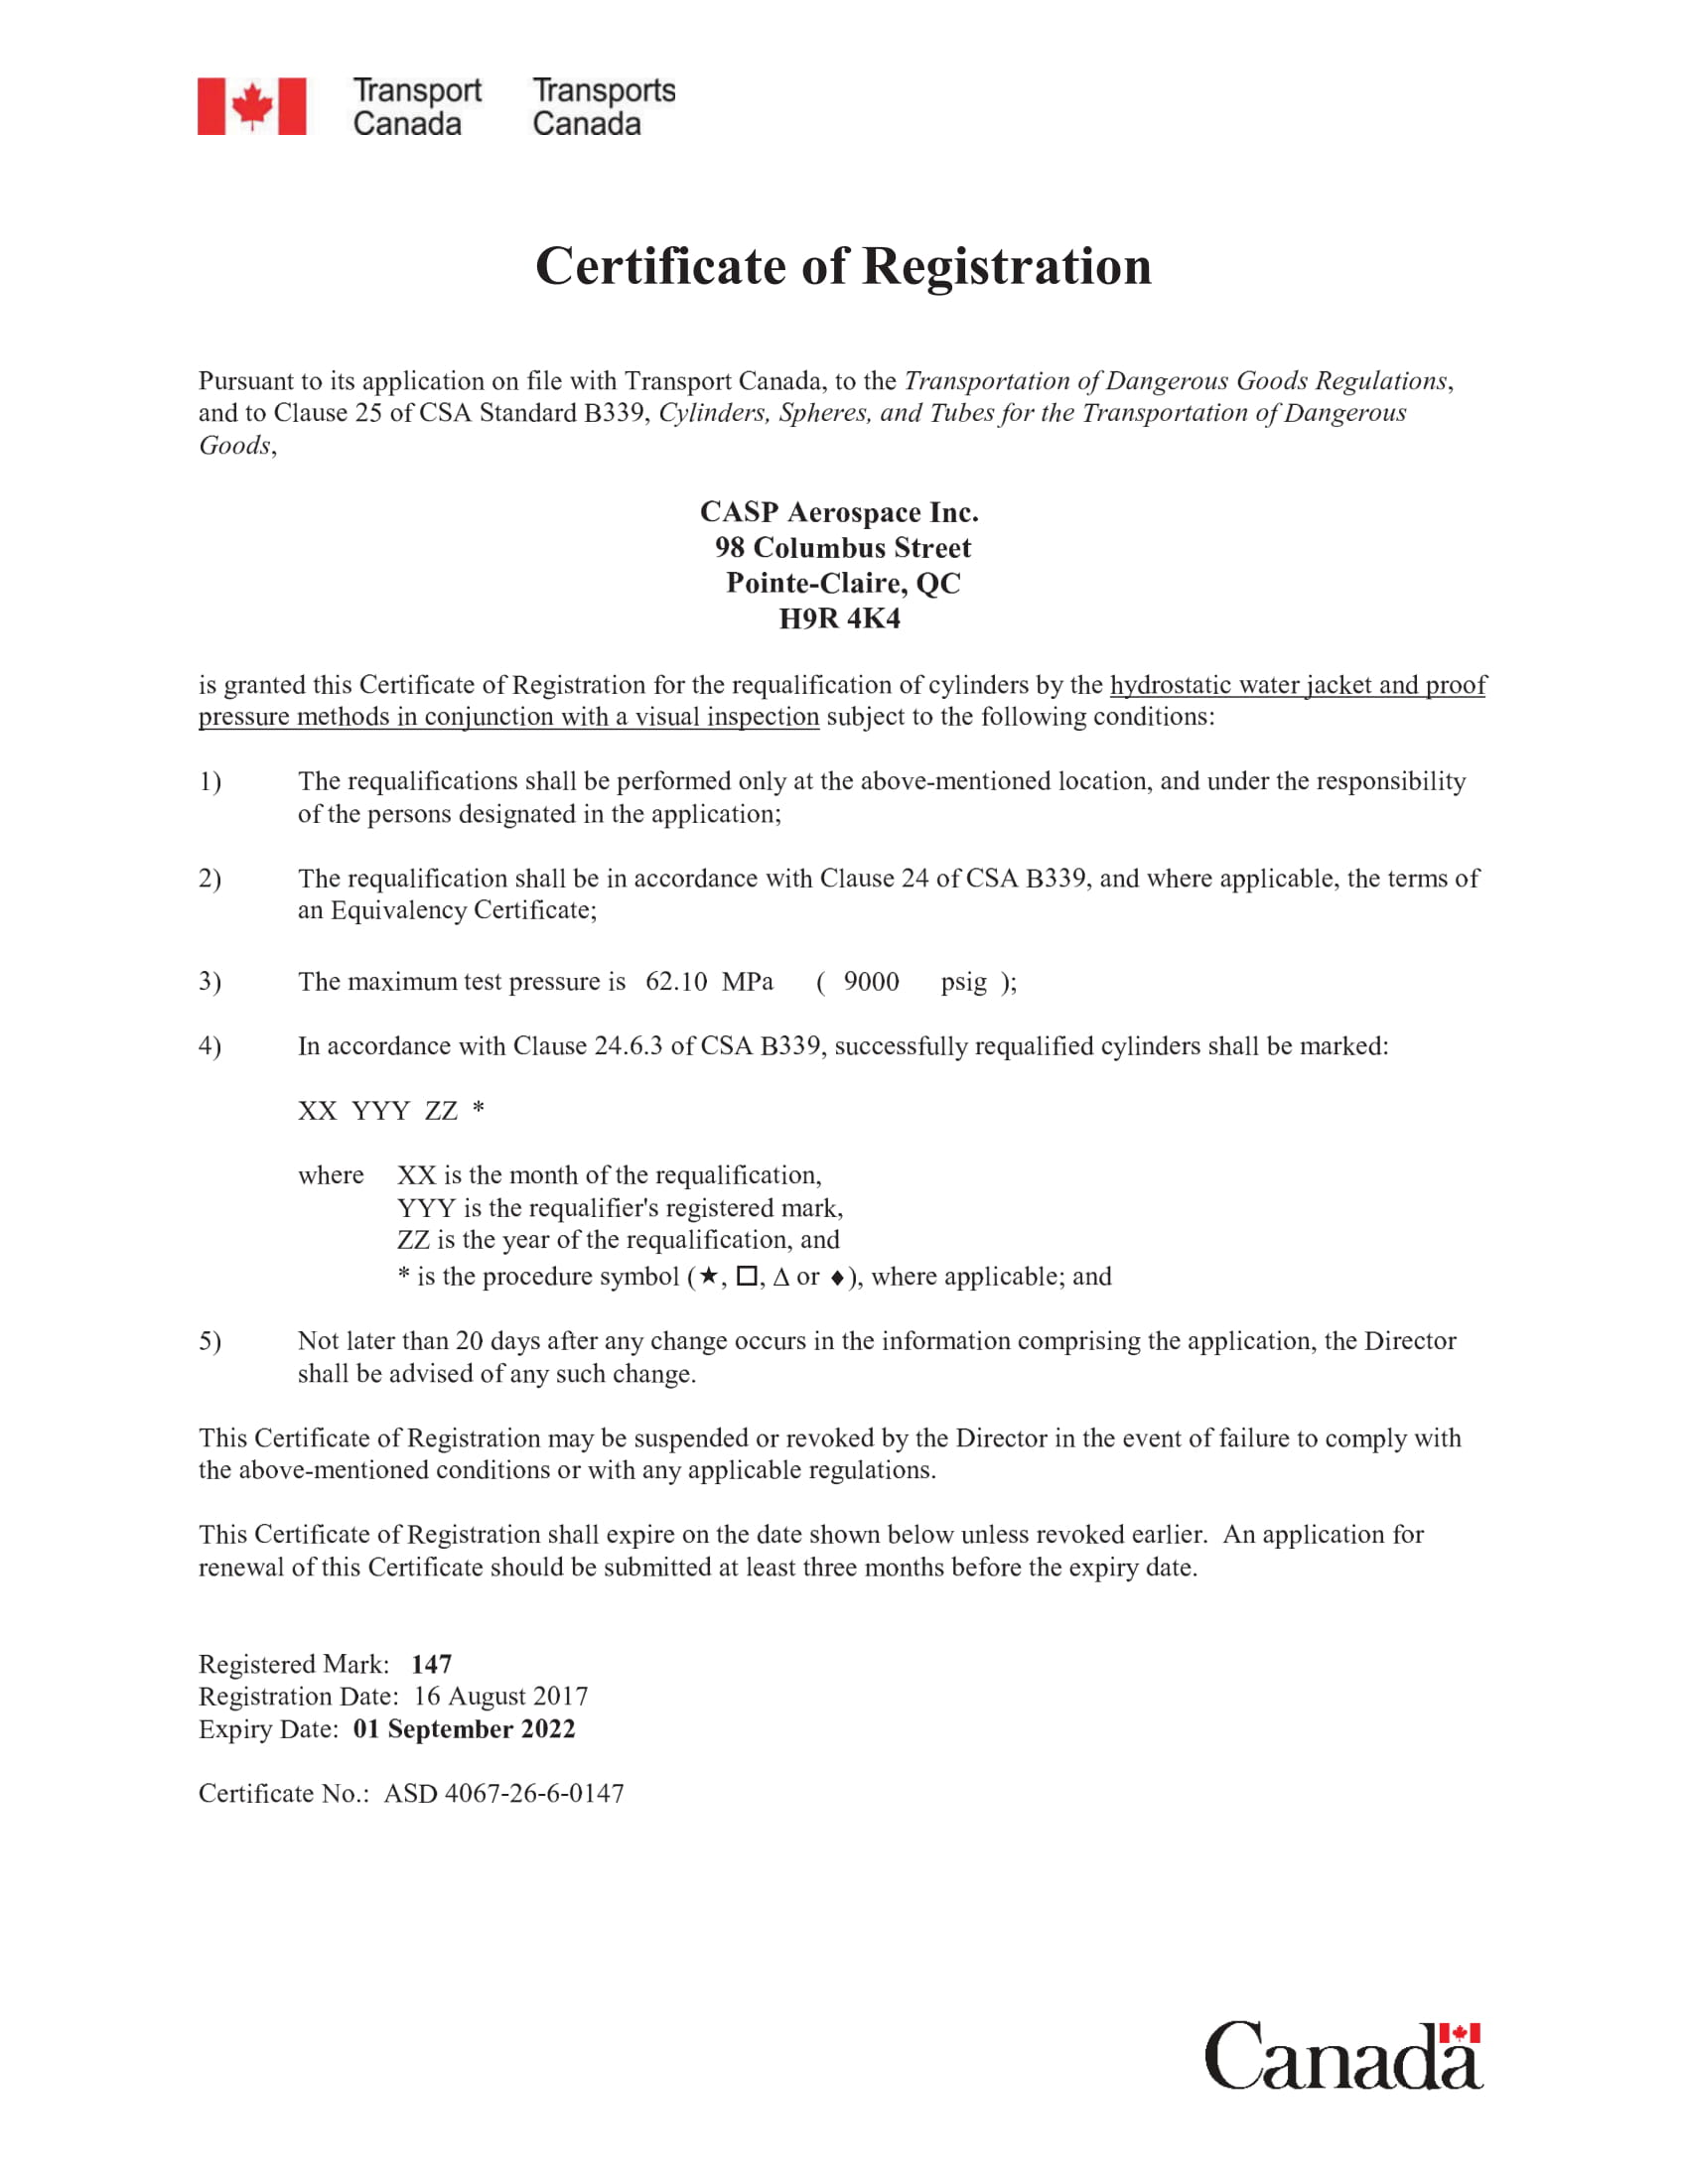 TCCA – Cert of Registration as Cylinder Re-Qualifications